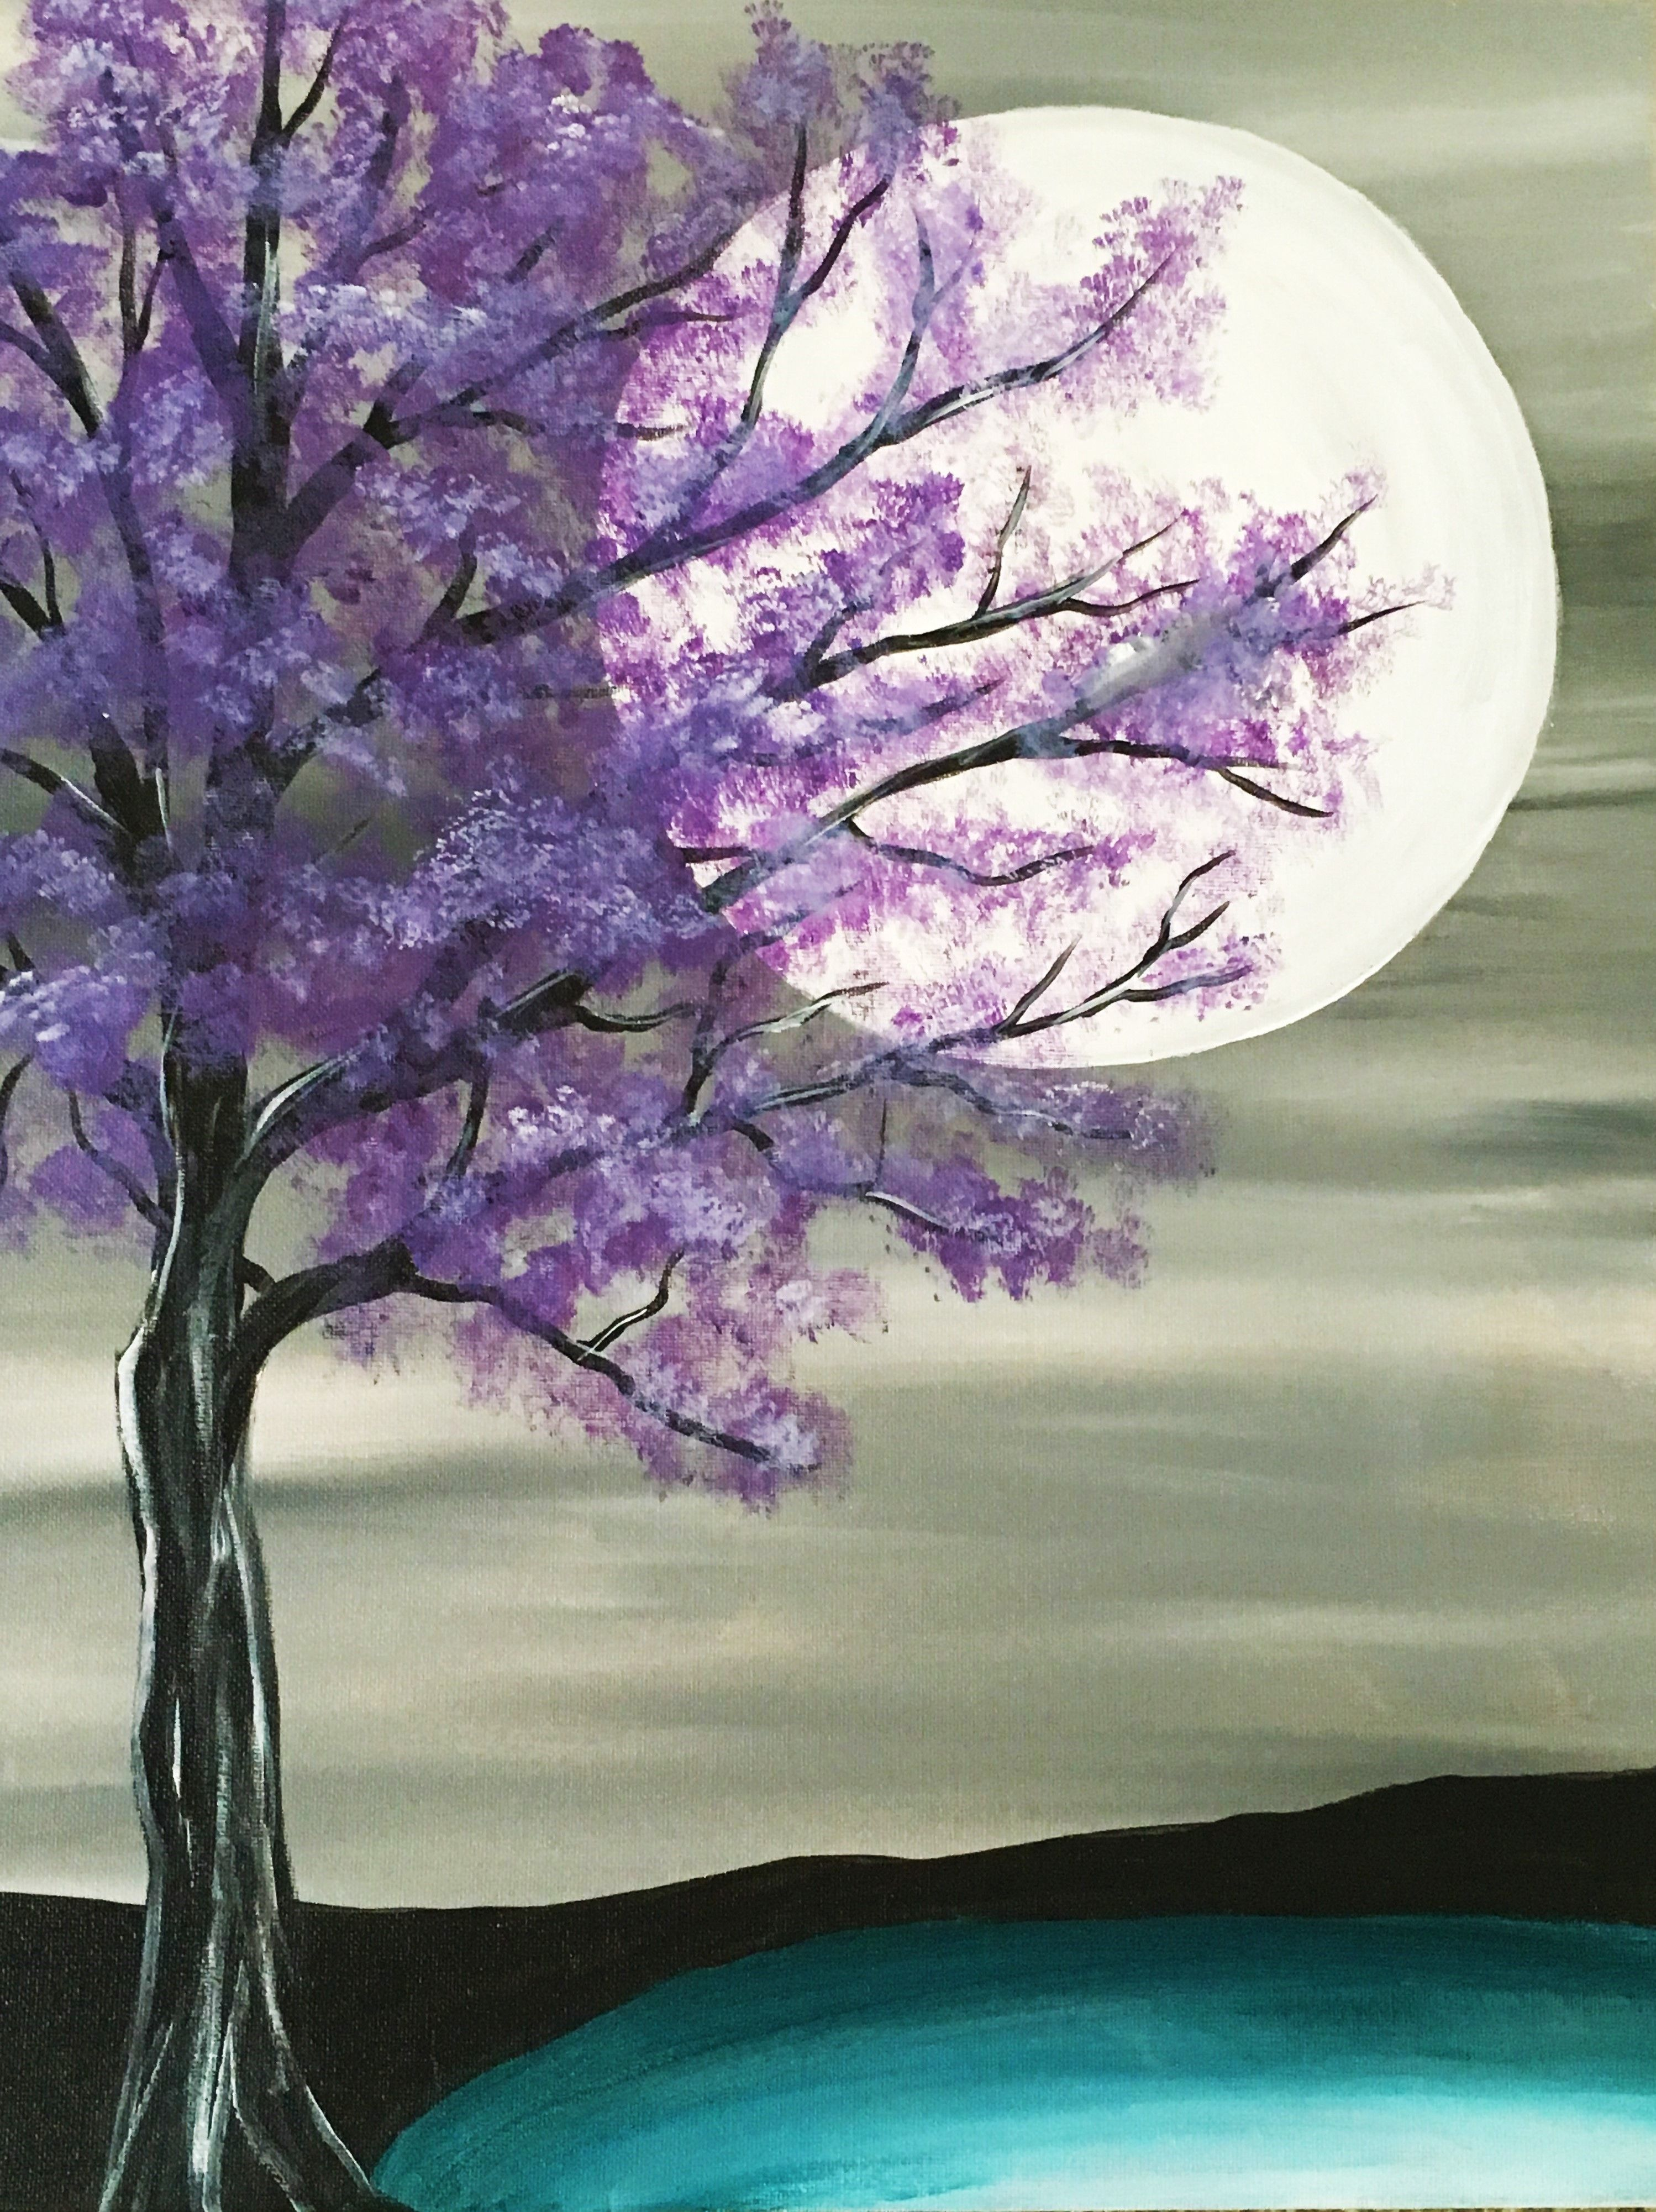 Paint nite drink paint party we host painting events at local learn how to paint purple majestic tree november for our paint nite paint party at negril vallge soho nyc we provide weekly painting tutorials and diy dhlflorist Image collections